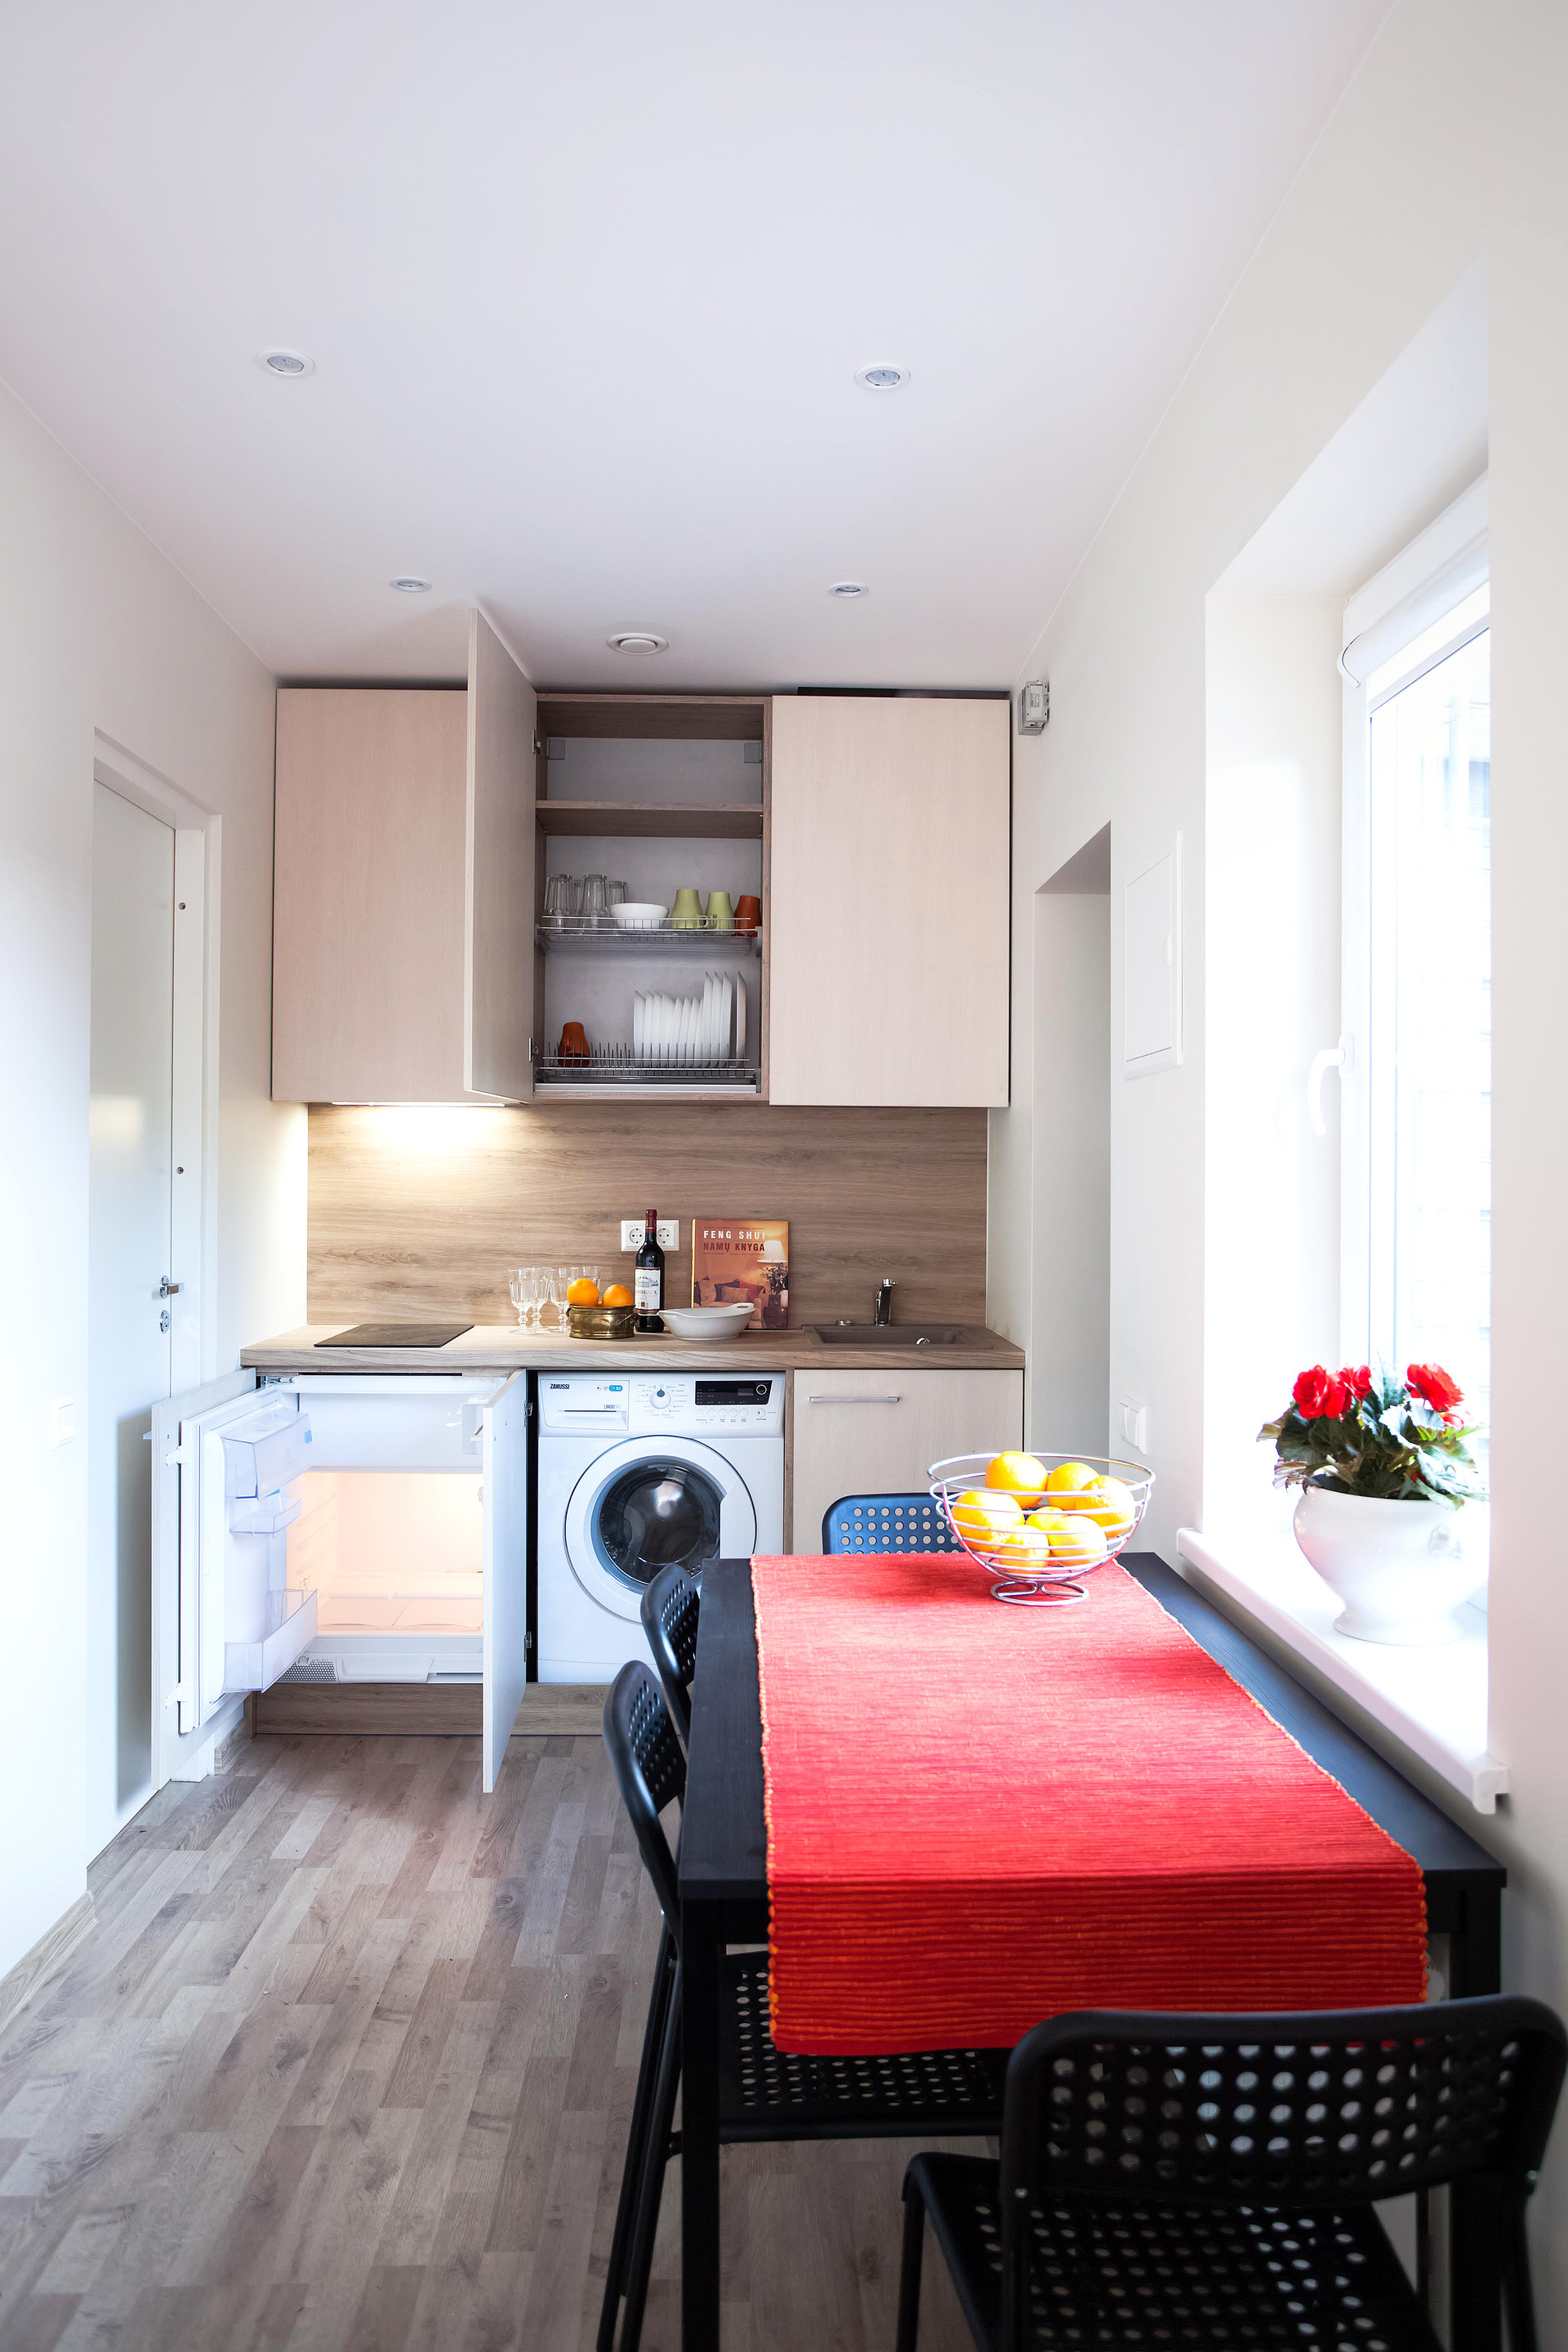 Newly Renovated 1 Bedroom Apartment In The Center Of